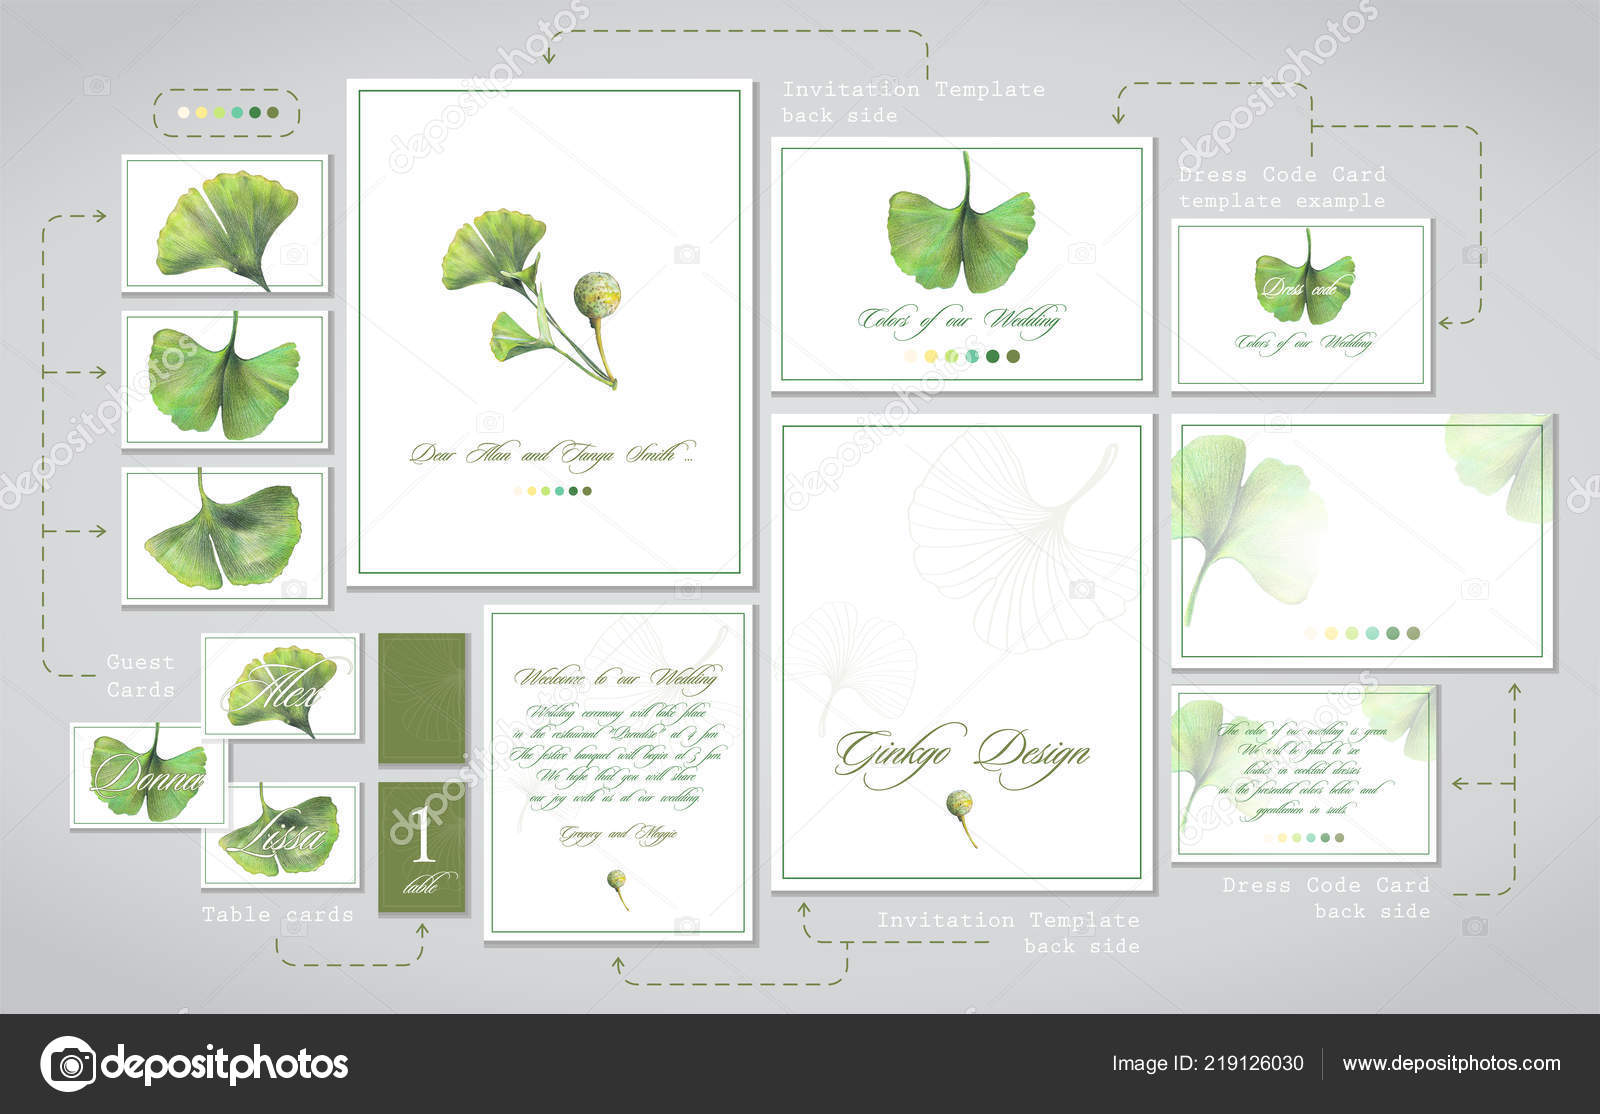 Set Wedding Printing Invitations Cards Guests Dress Code Tables